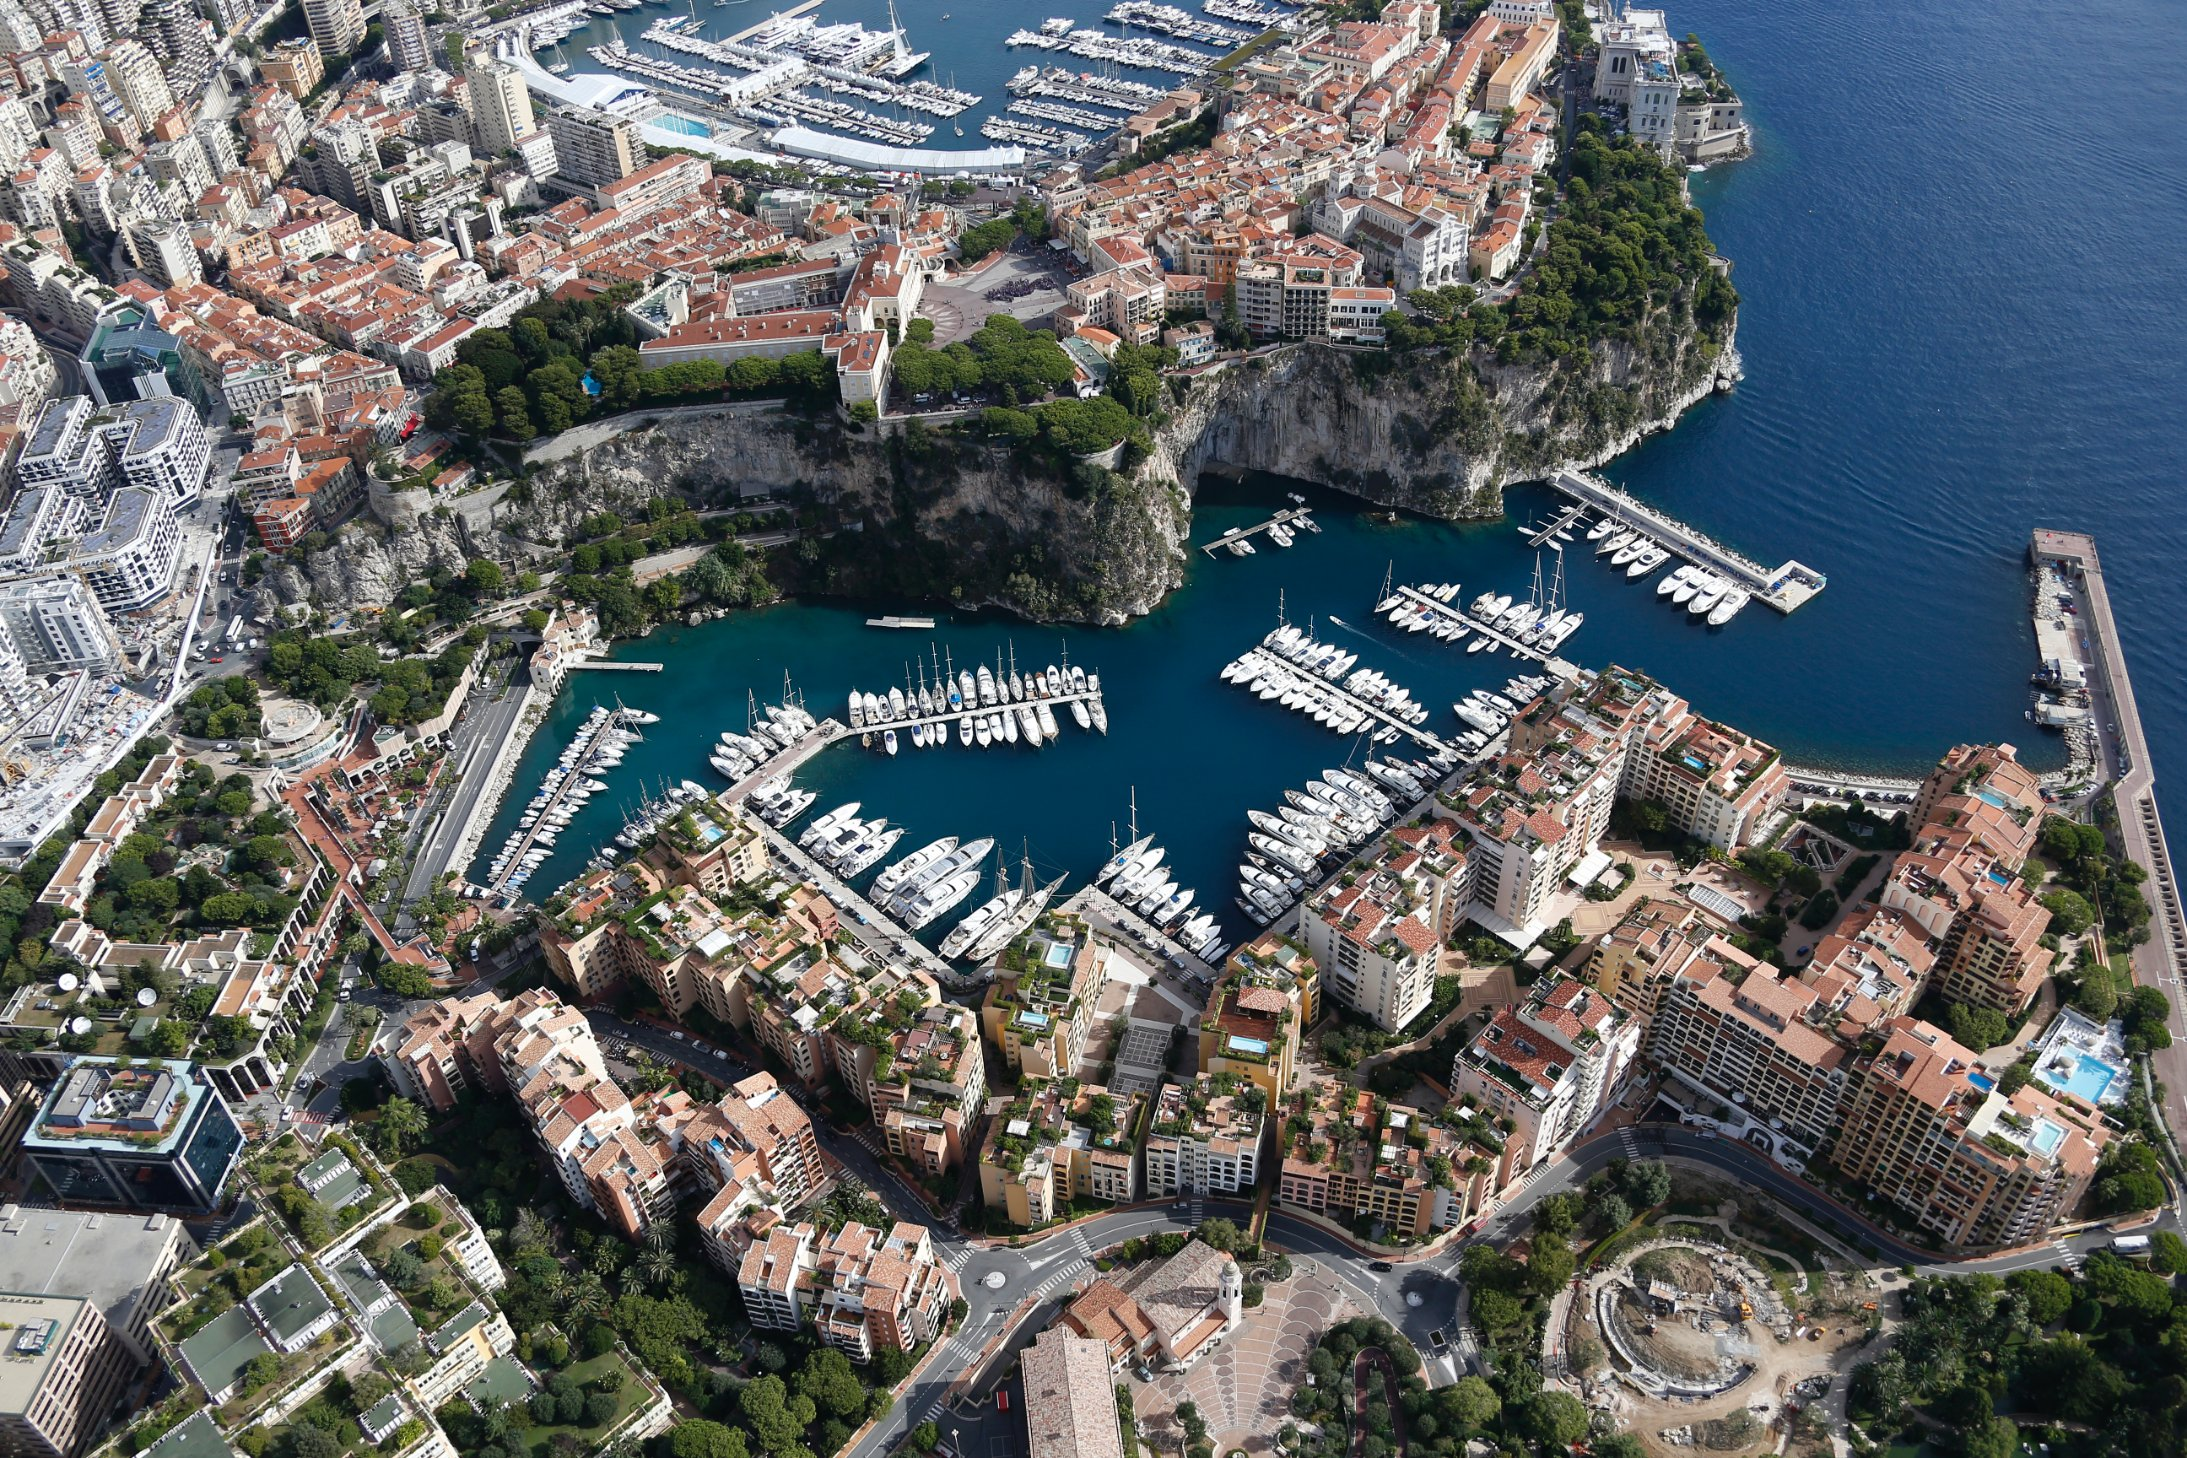 Terrasse Du Port Monaco Monaco S 2 3bn Project To Expand Into Mediterranean Sea Cnn Style